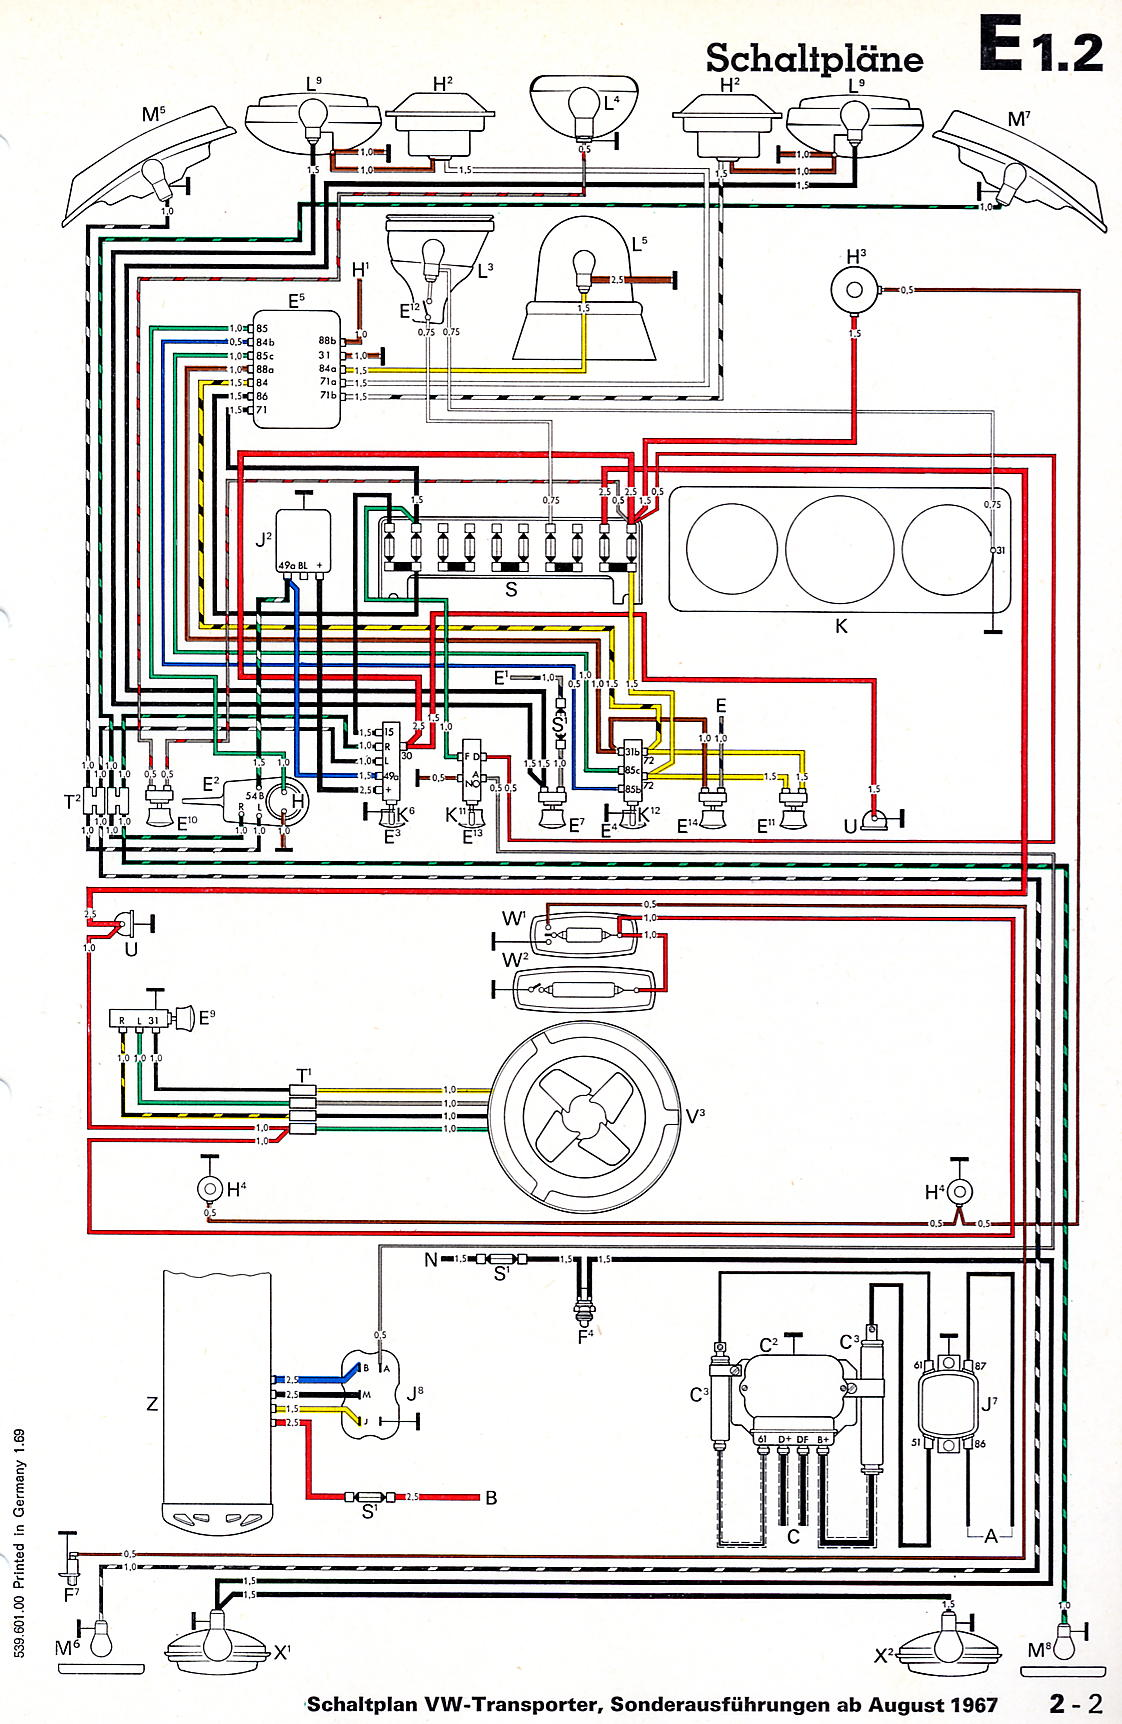 Transporter_from_August_1967_aditional_items vintagebus com vw bus (and other) wiring diagrams vw t5 fog light wiring diagram at gsmx.co